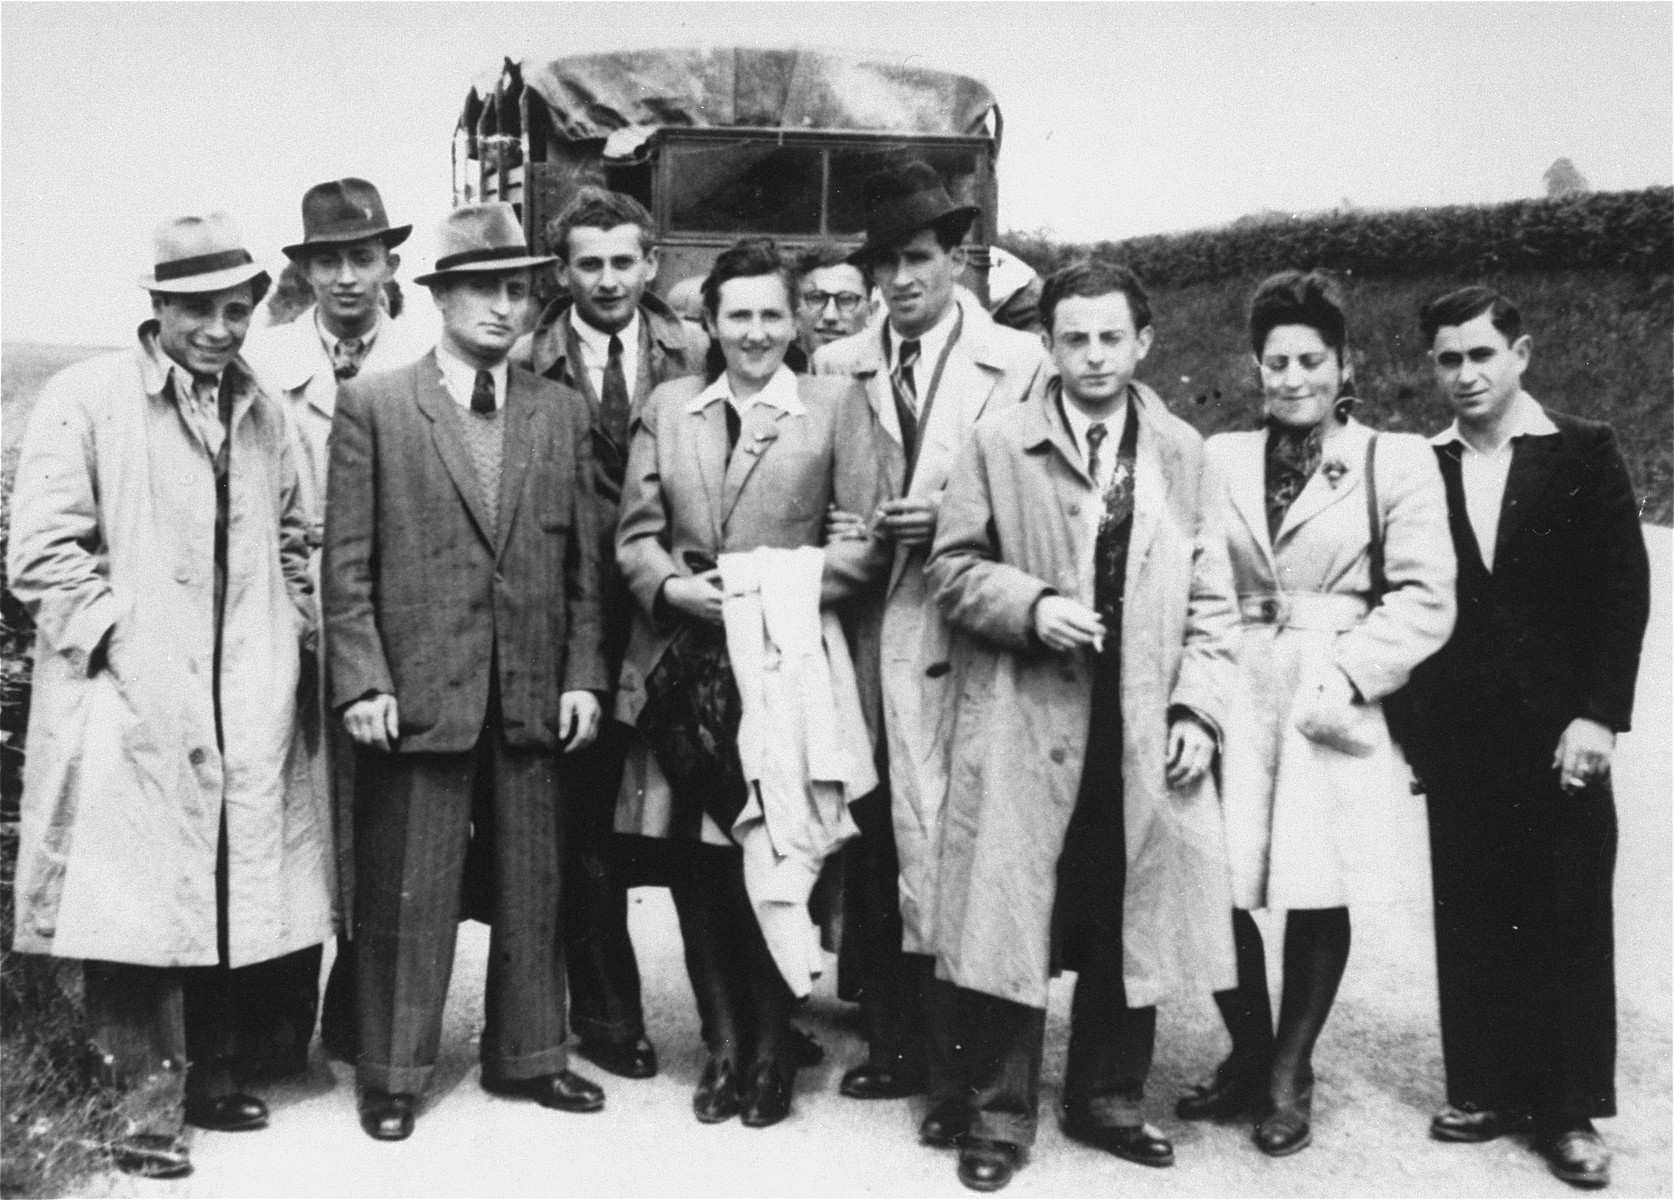 Group portrait of Jewish DPs from the Foehrenwald displaced persons camp on an excursion to Garmisch.  Among those pictured is Pinhas Kirszenblat (third from the right) and Cima Zalcberk (second from the right).